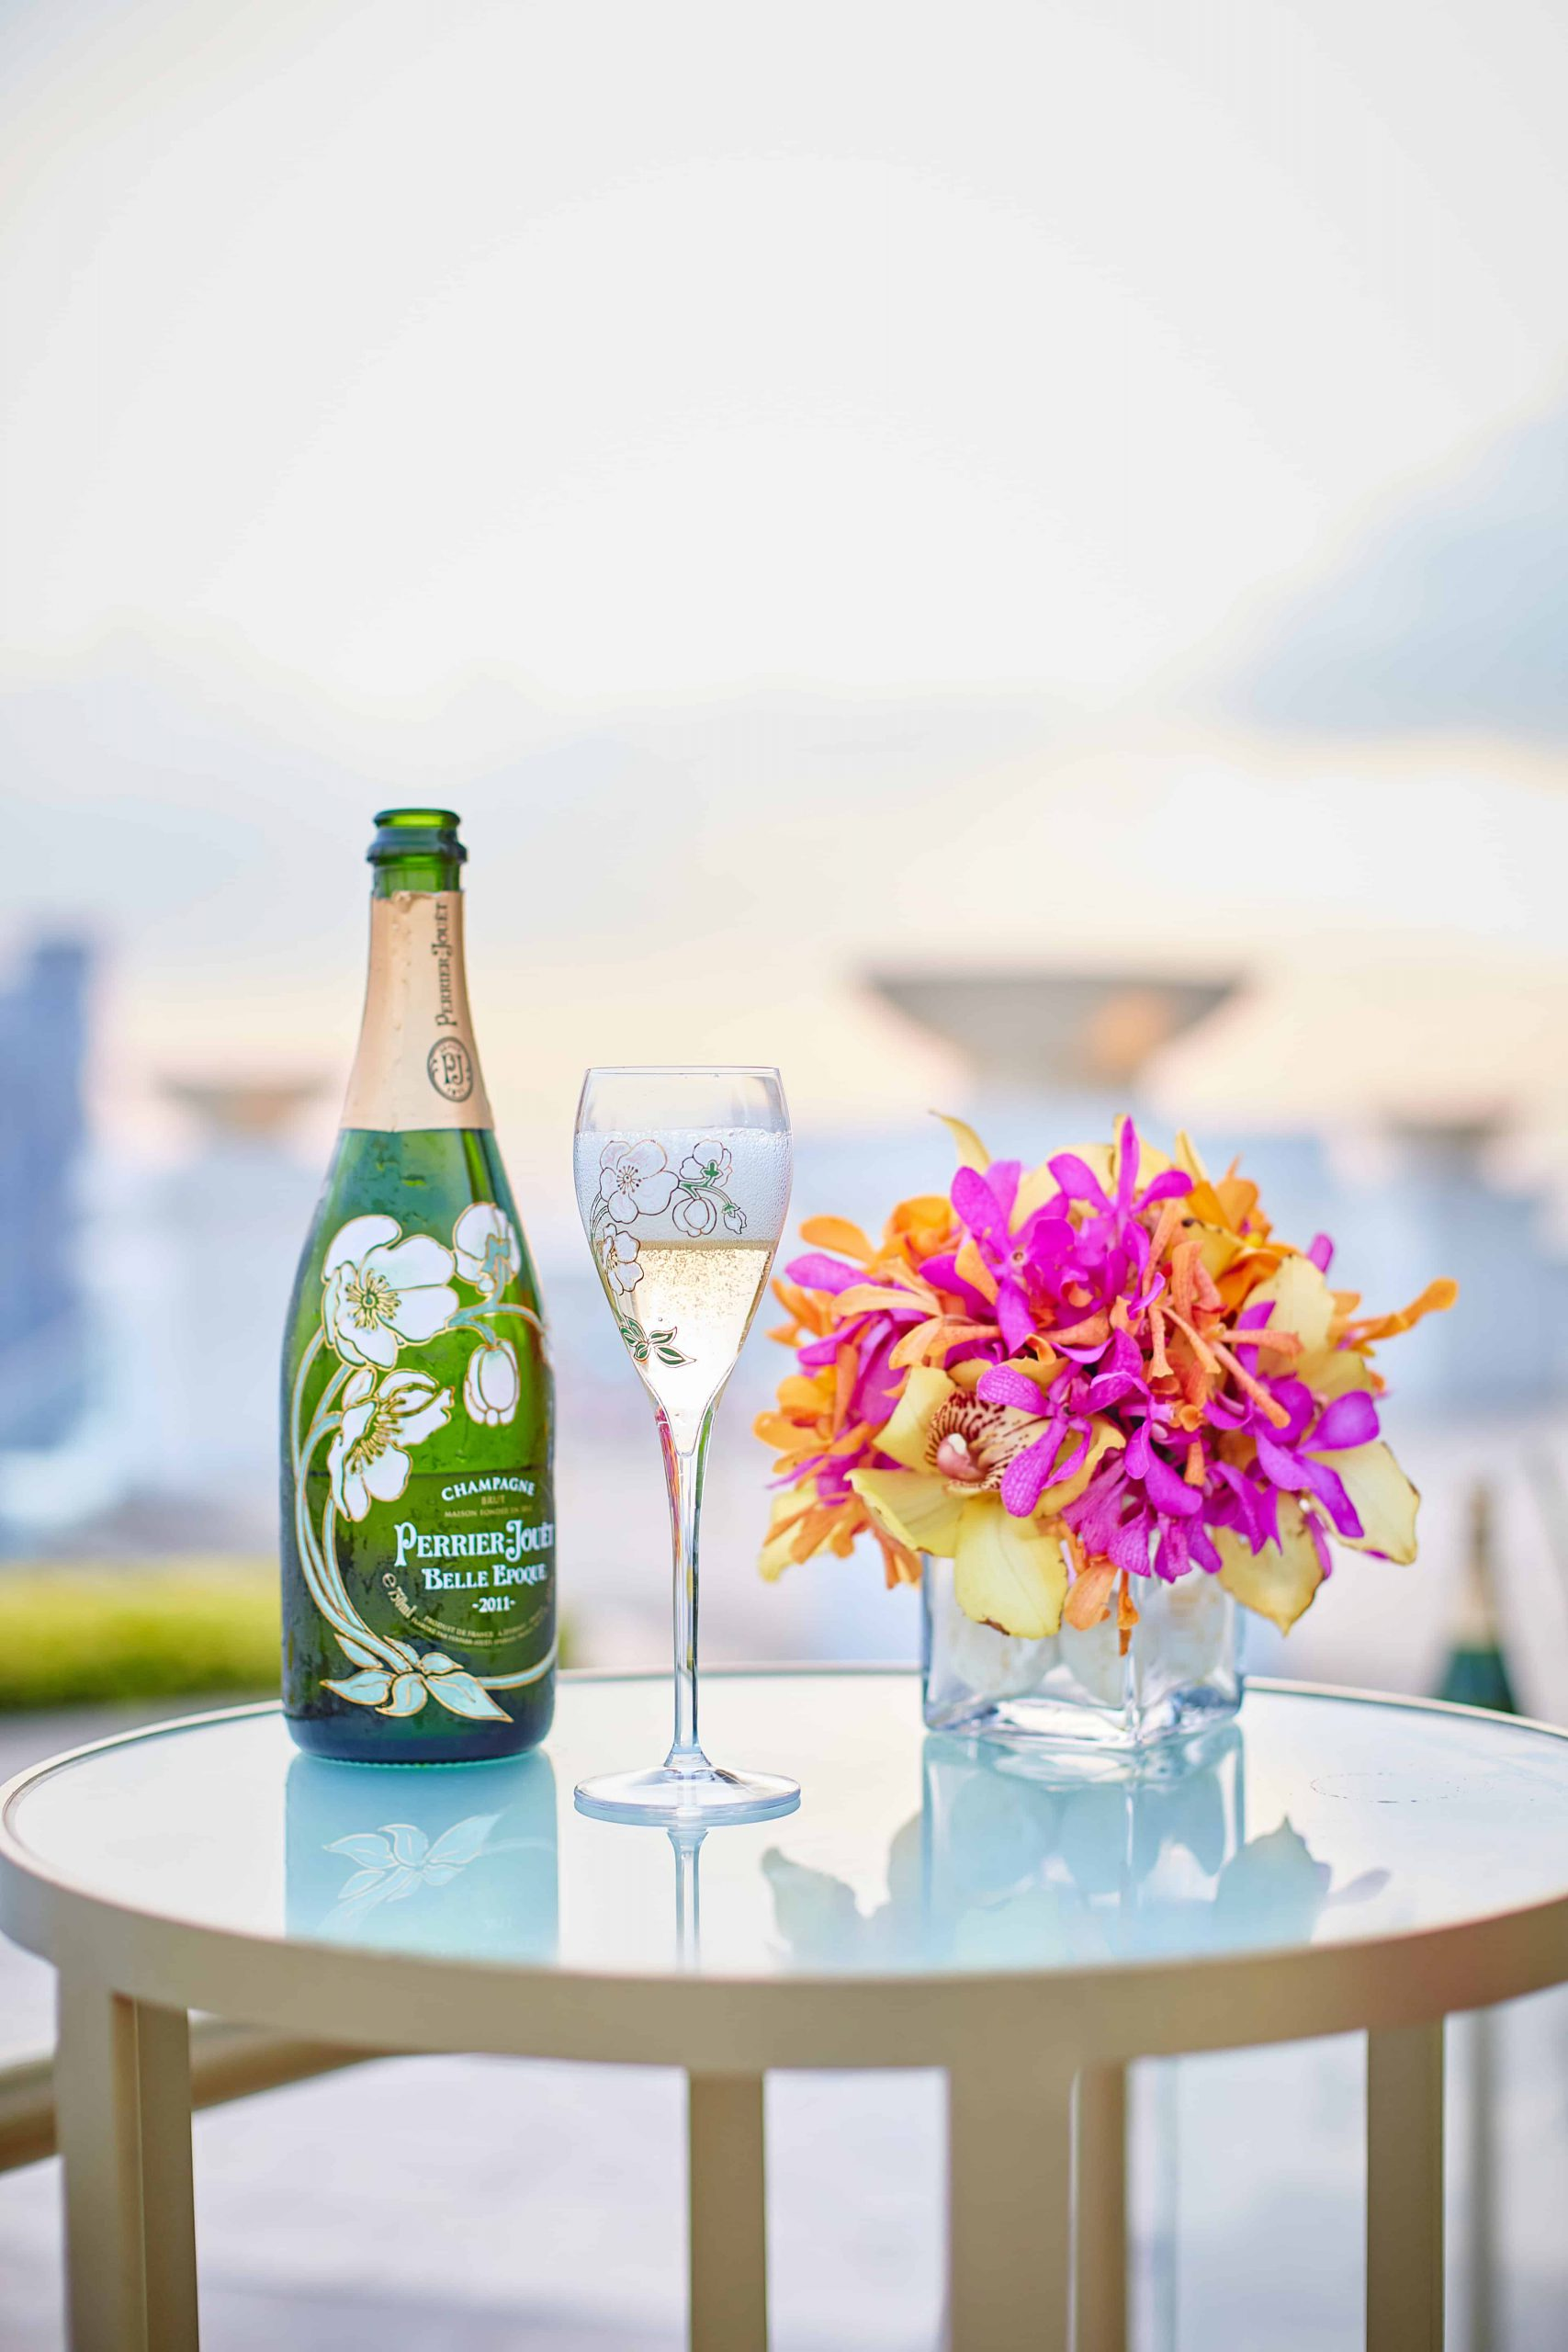 Bottle of wine with a glass of win and flowers